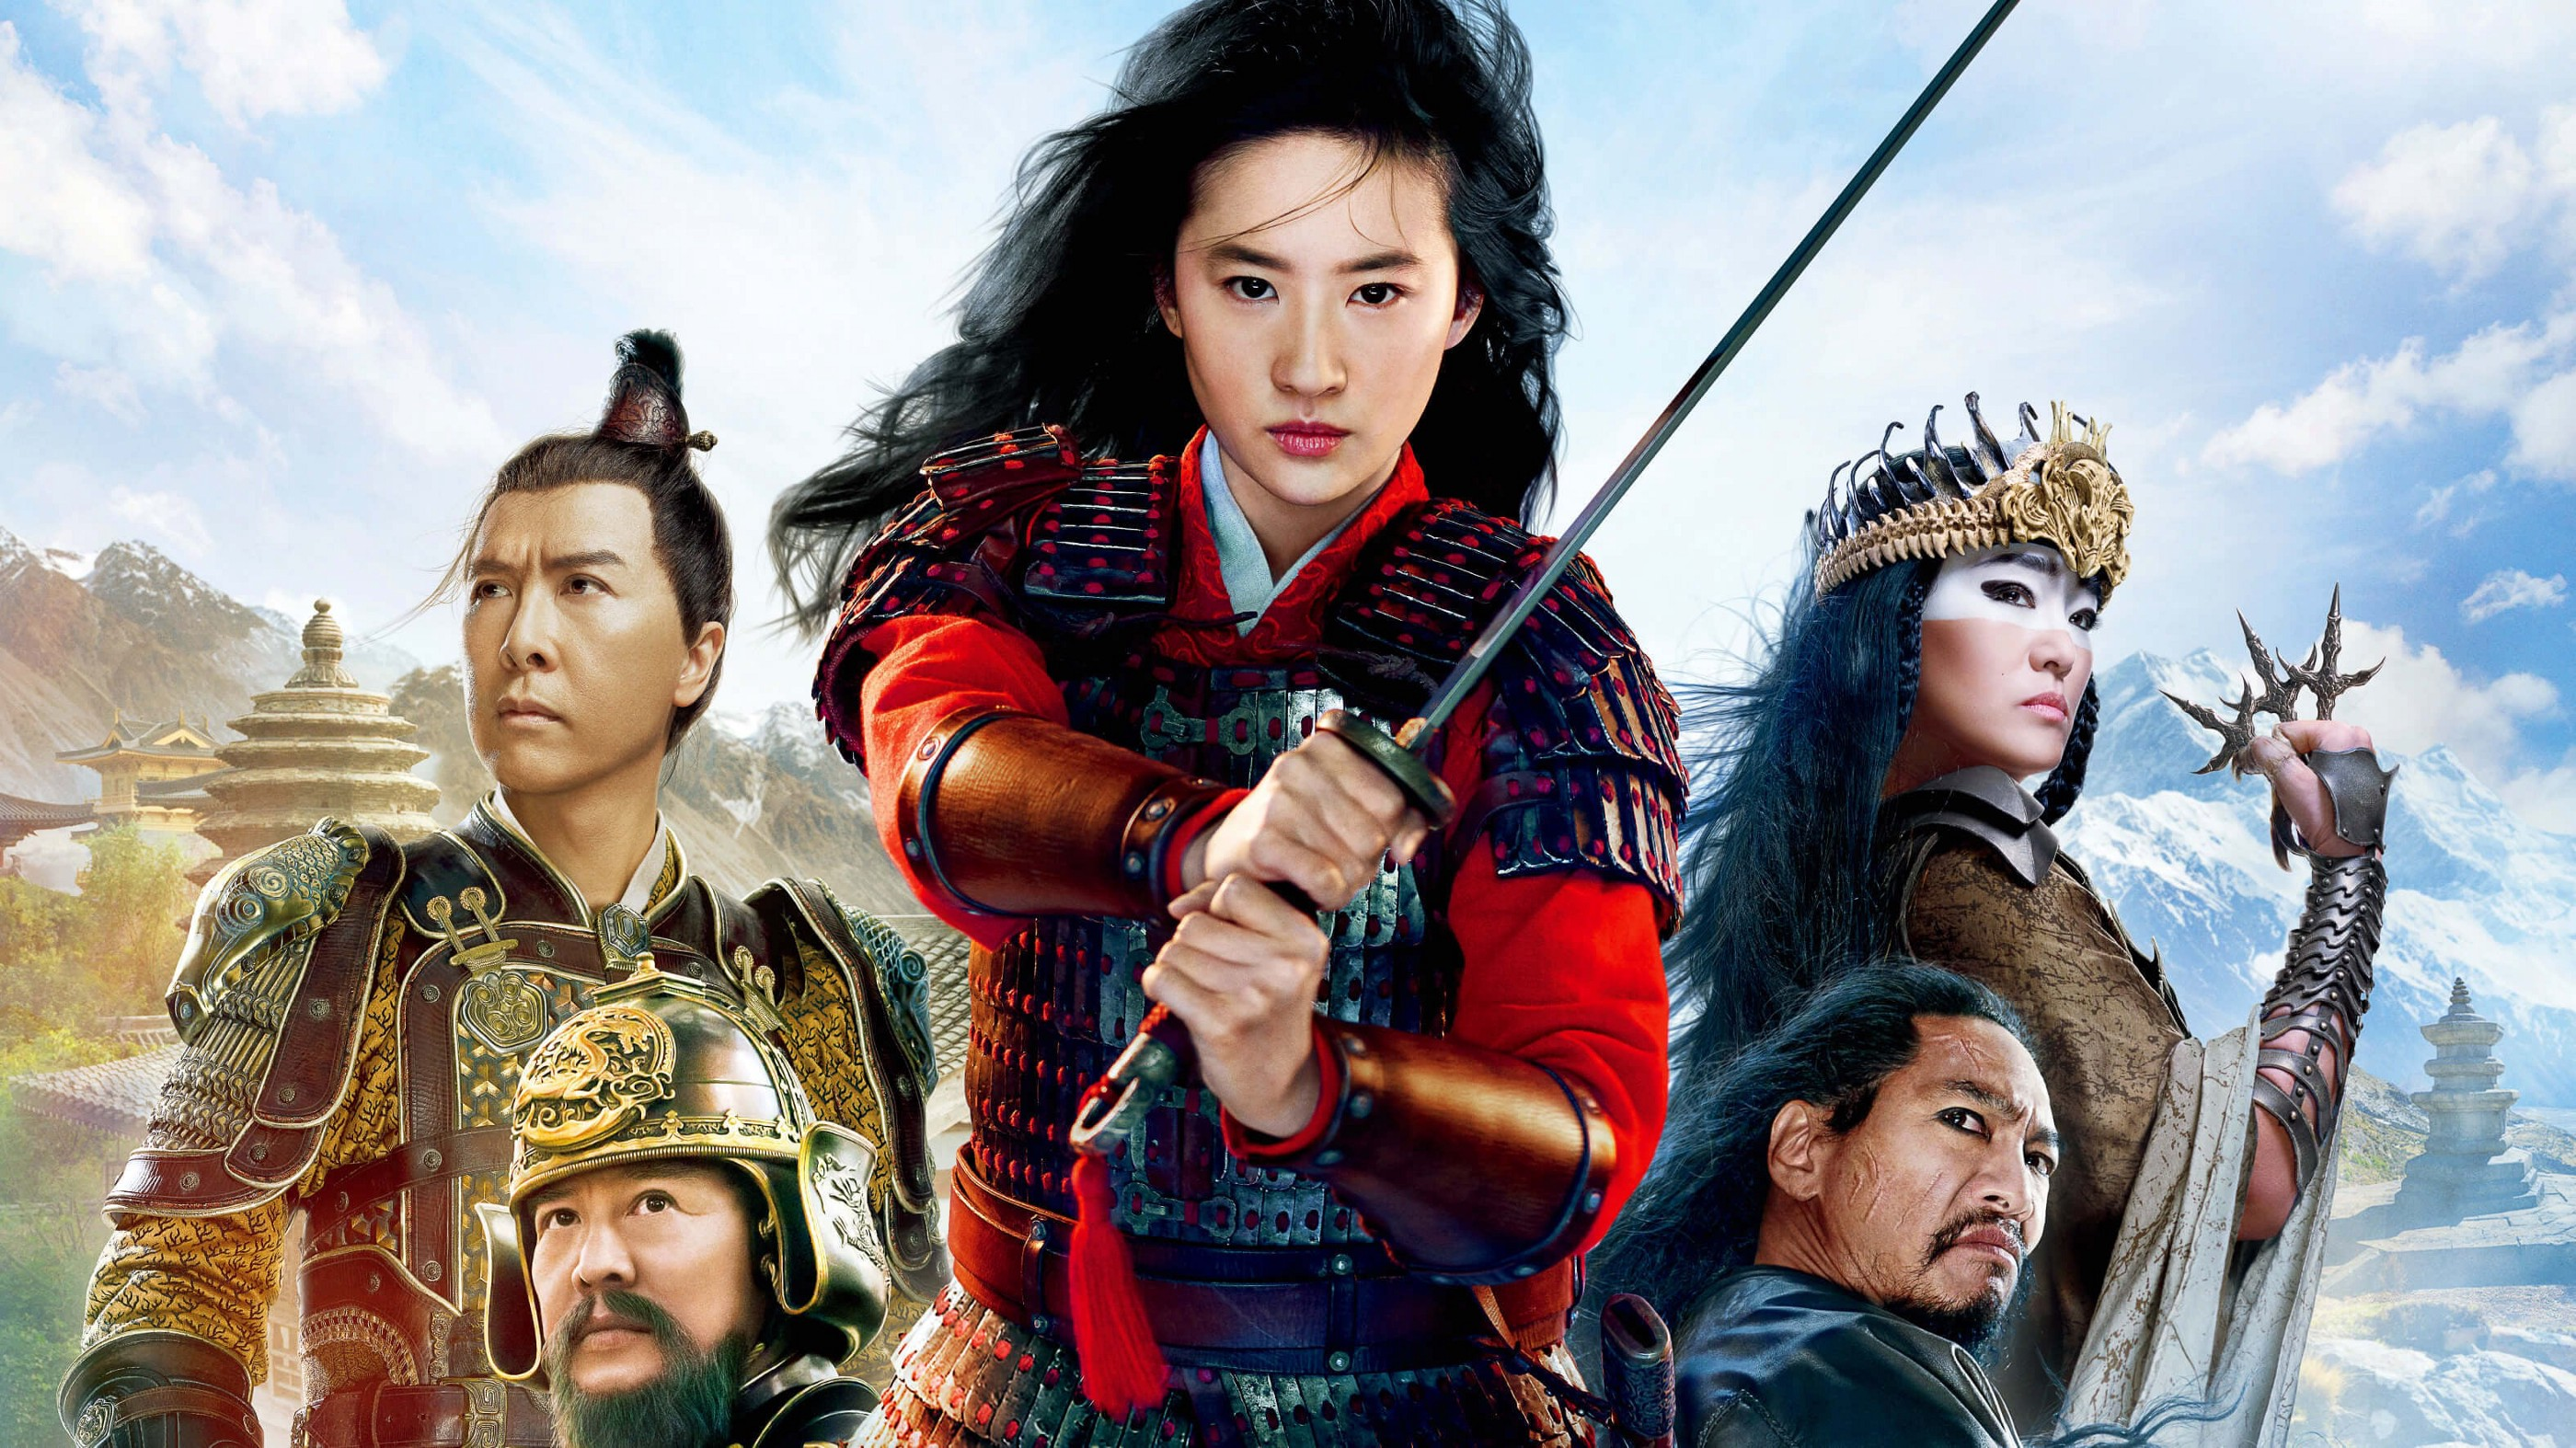 Mulan 2020 Is American Action Drama By Kamuharusnya Sep 2020 Medium